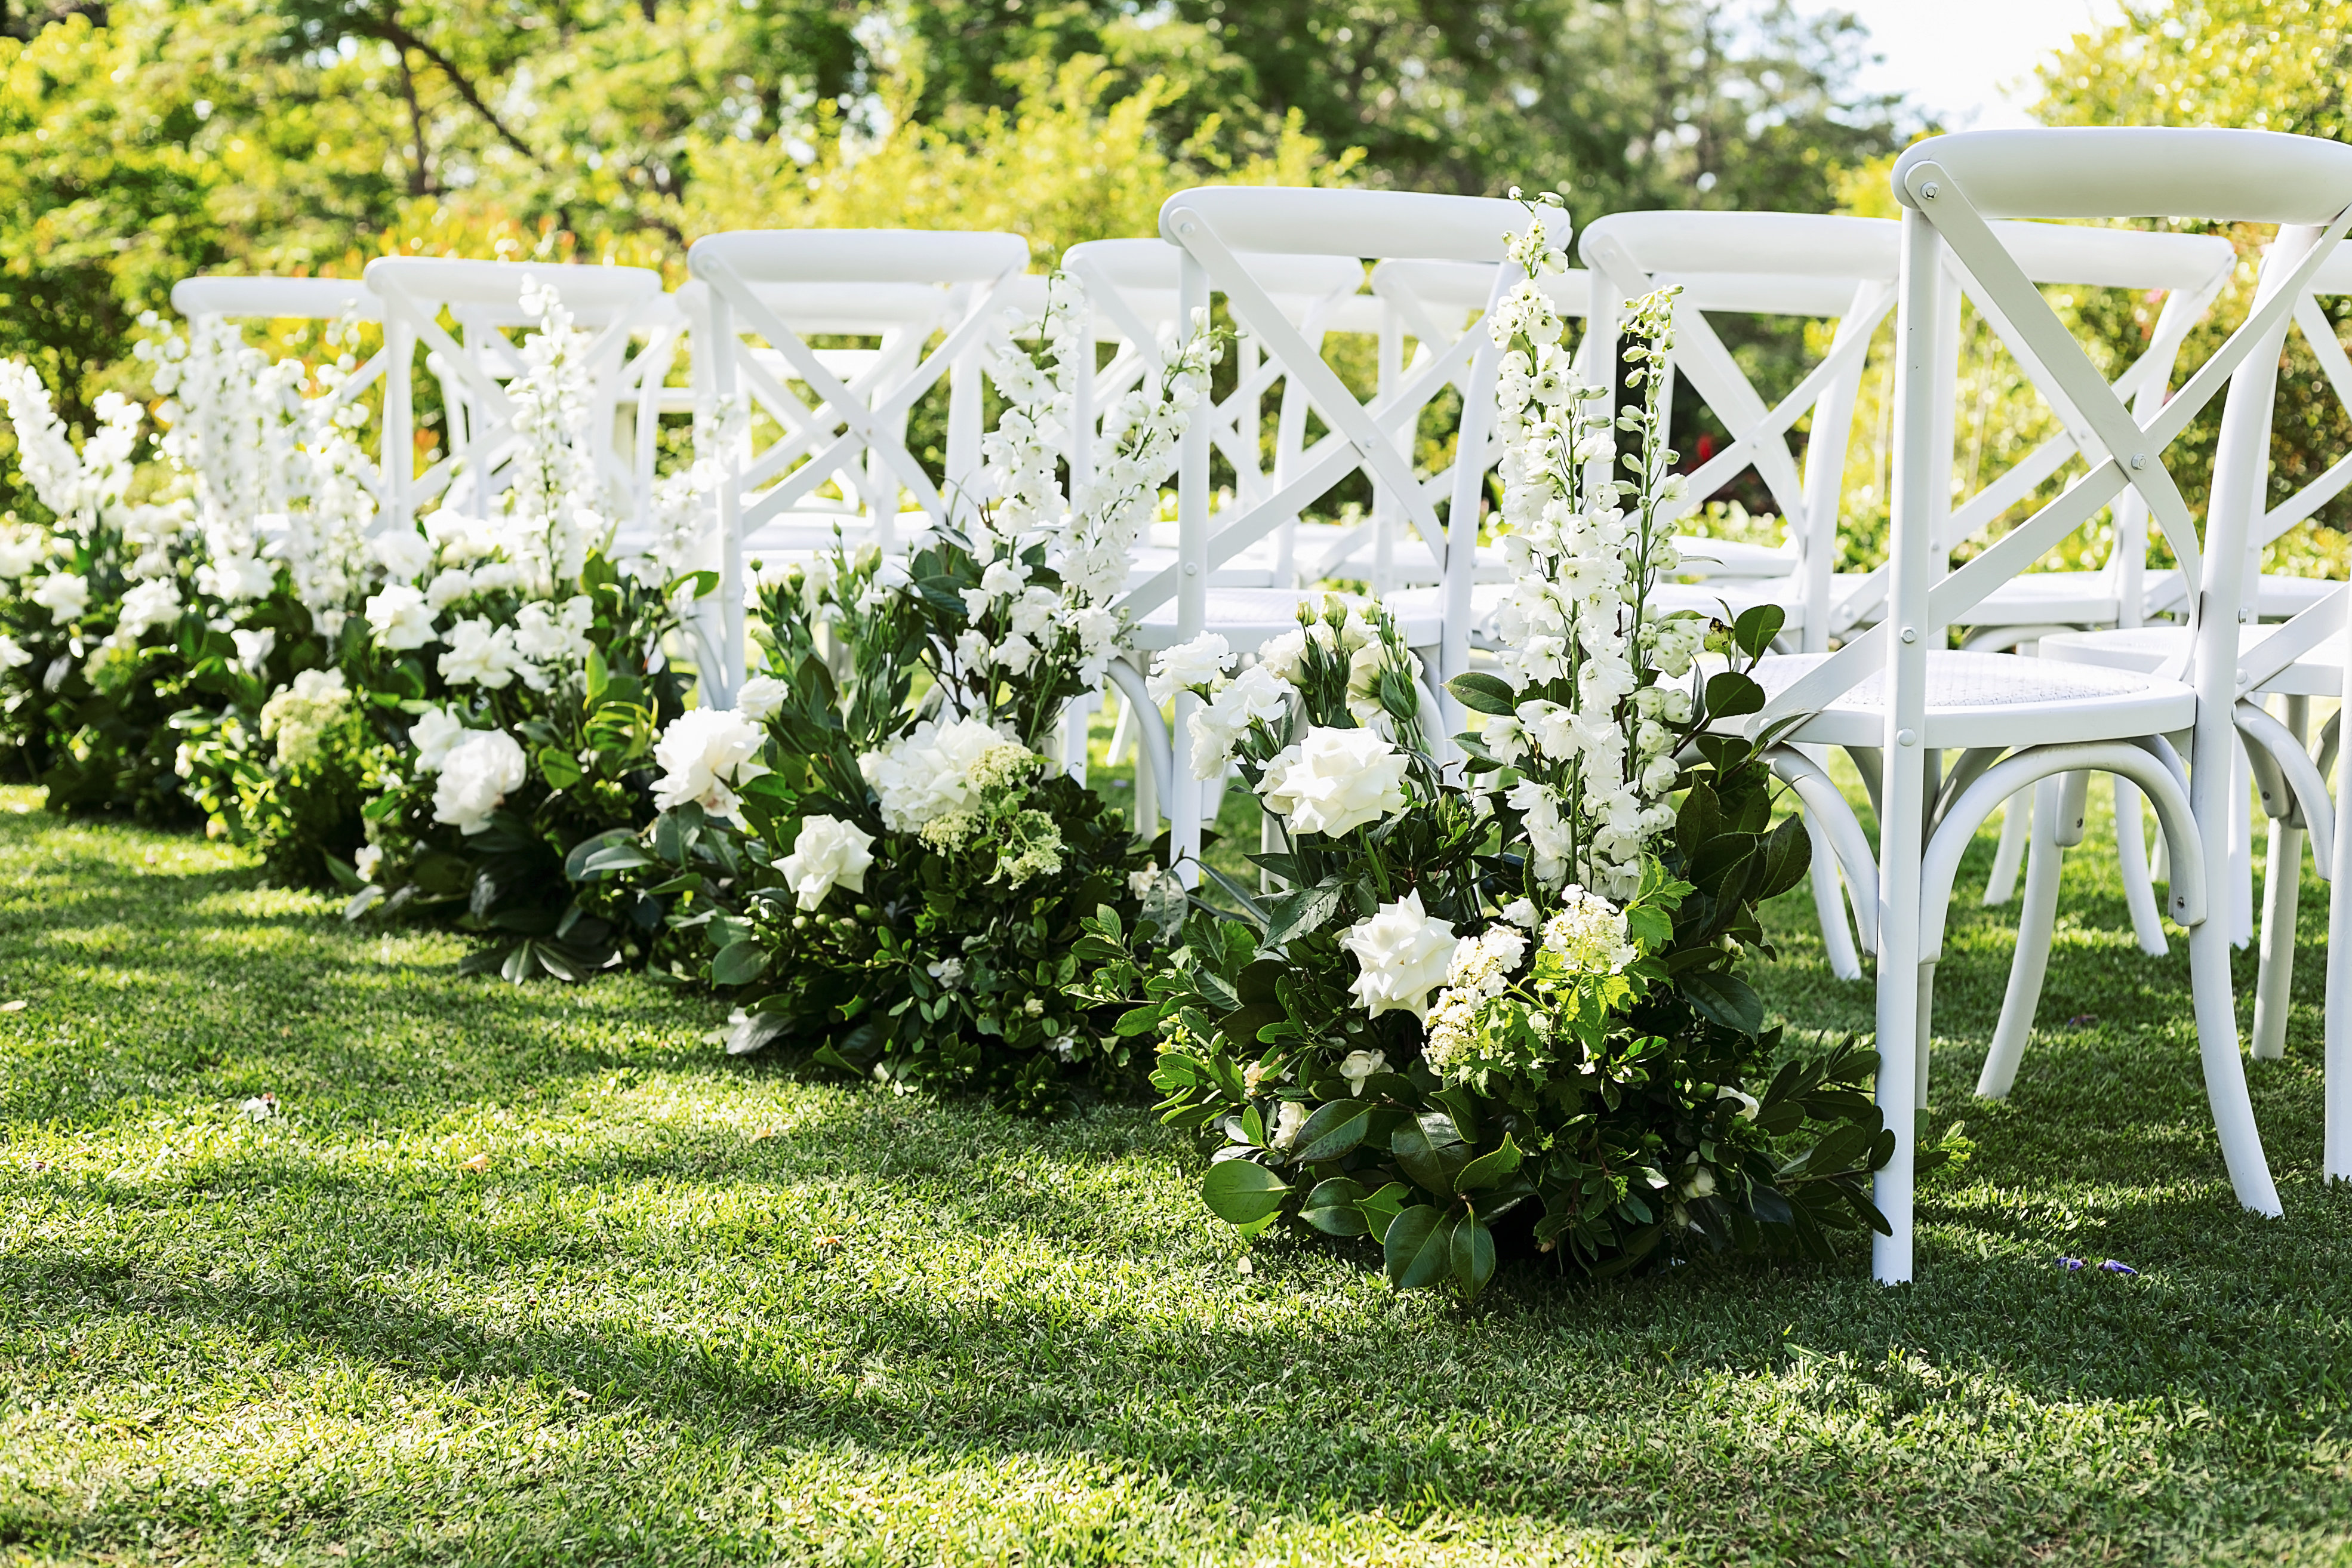 Ceremony aisle hedging with lush greenery and white delphinium